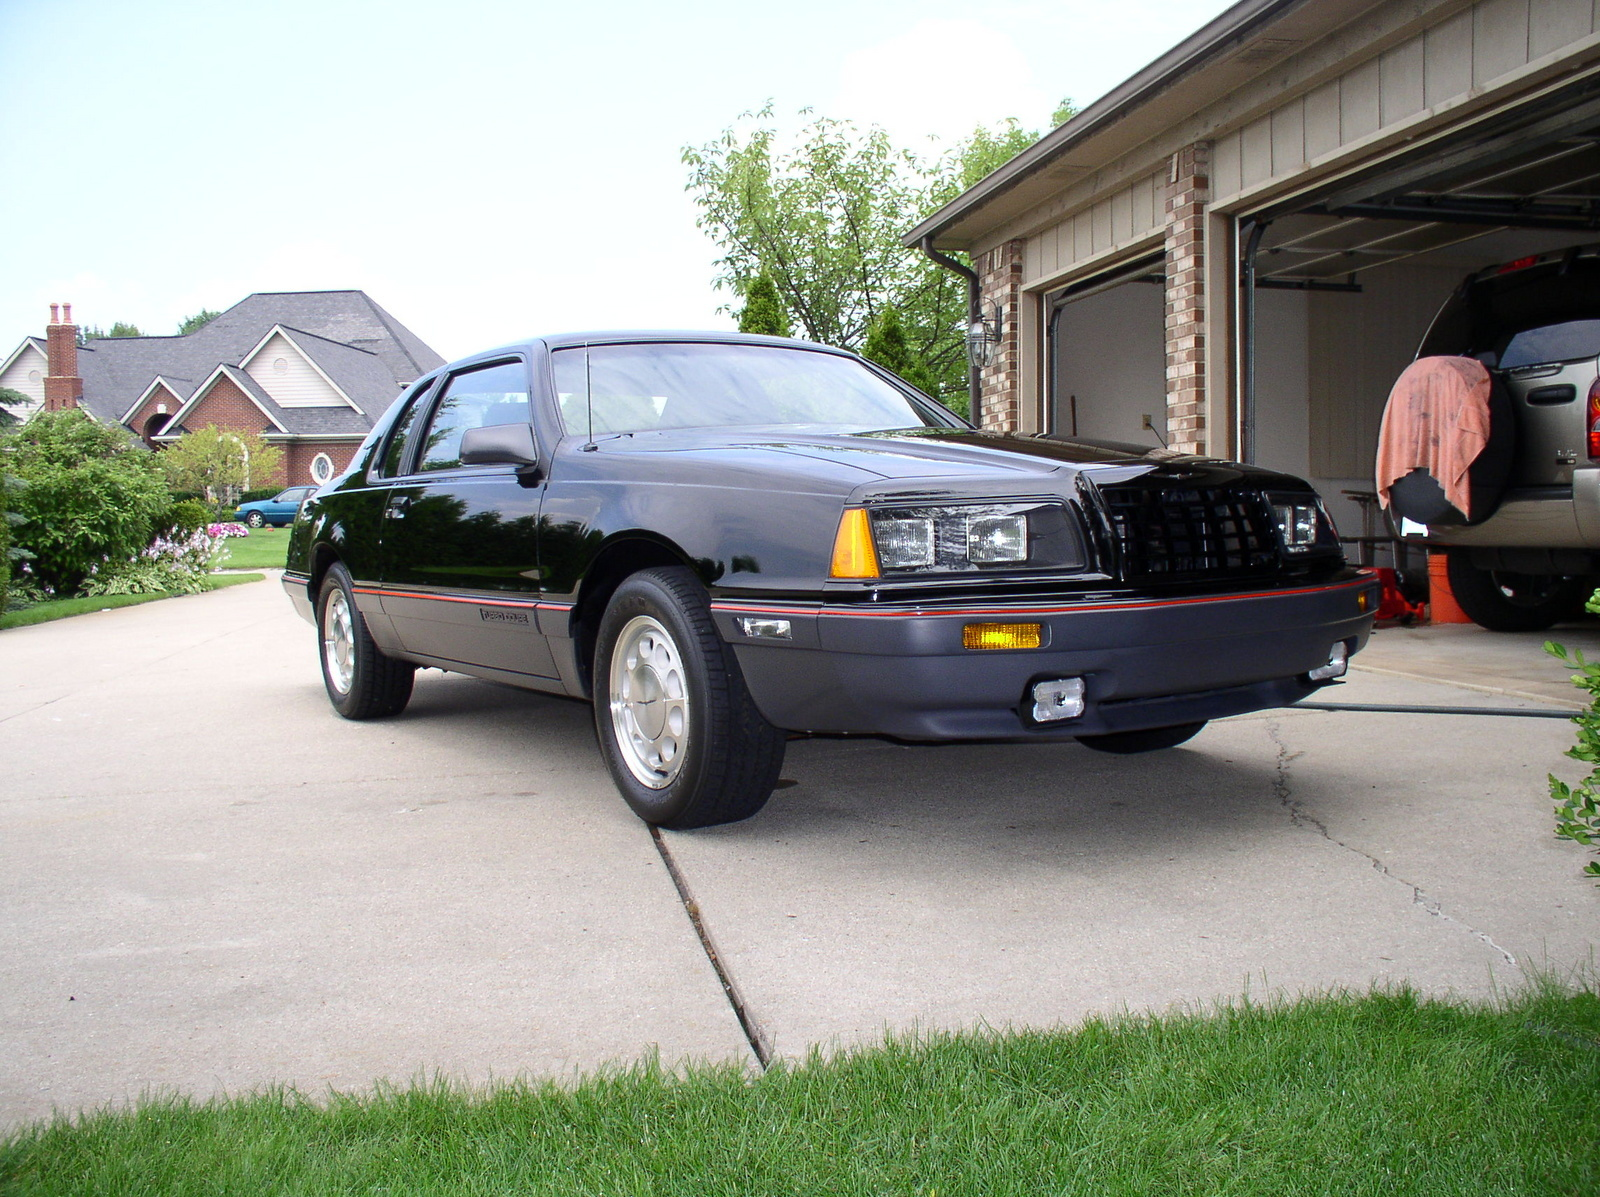 also Pic X besides Scinterior likewise Pro Touring Pinto With A L Turbo additionally L Ranger Wiring. on 1988 ford thunderbird turbo coupe engine